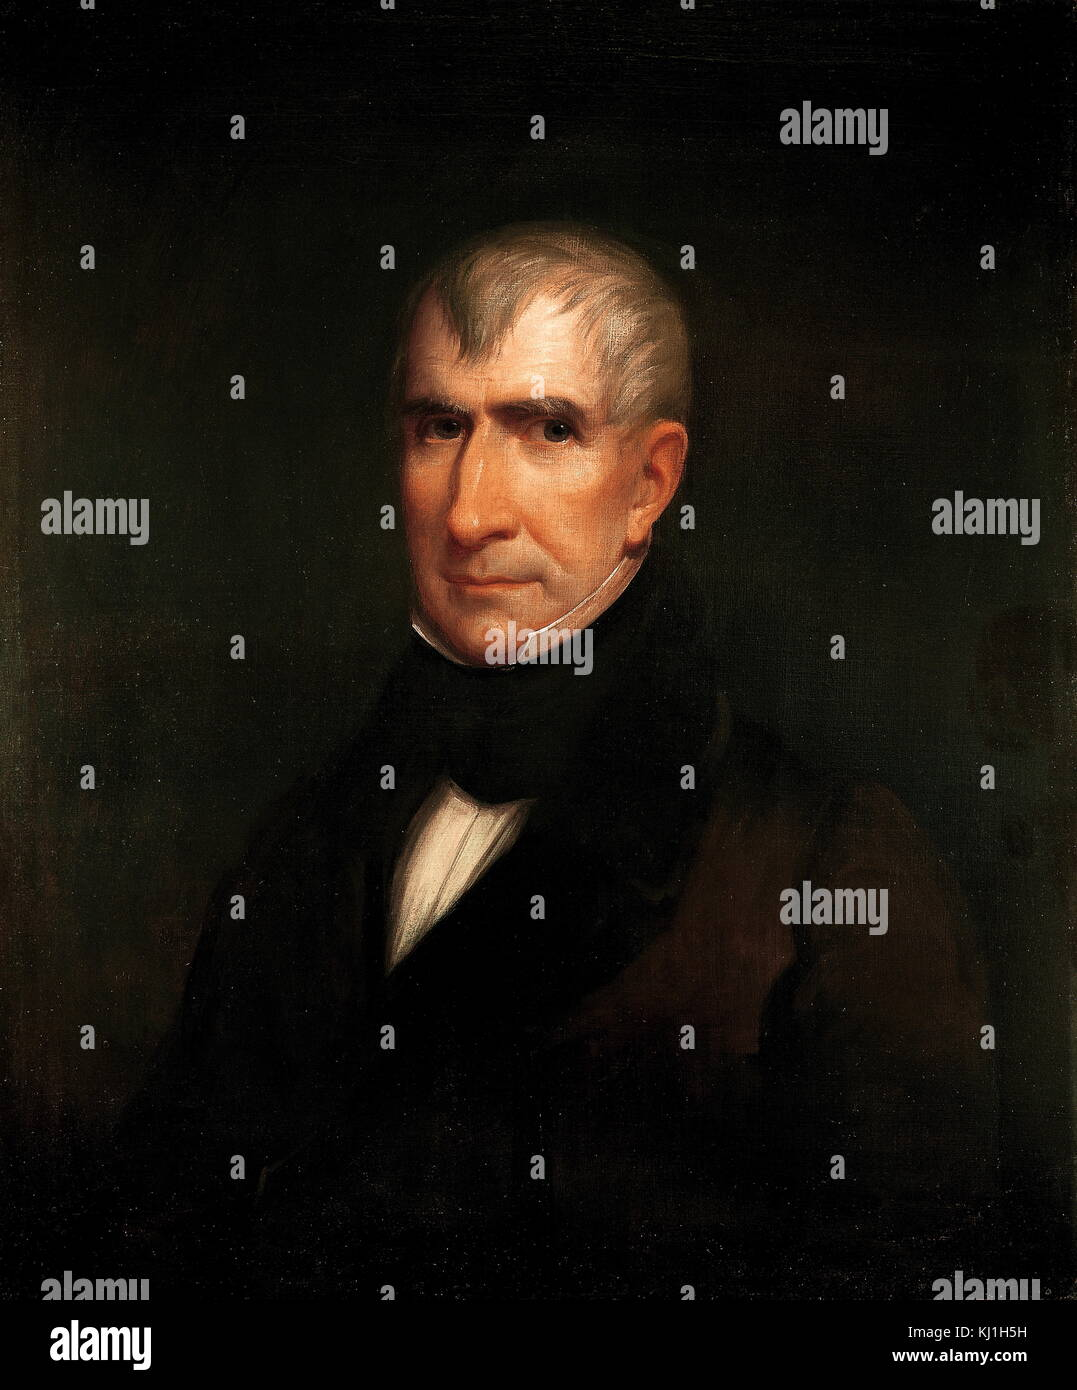 William Henry Harrison Sr. (1773 – April 4, 1841) President of the United States (1841), an American military officer, - Stock Image